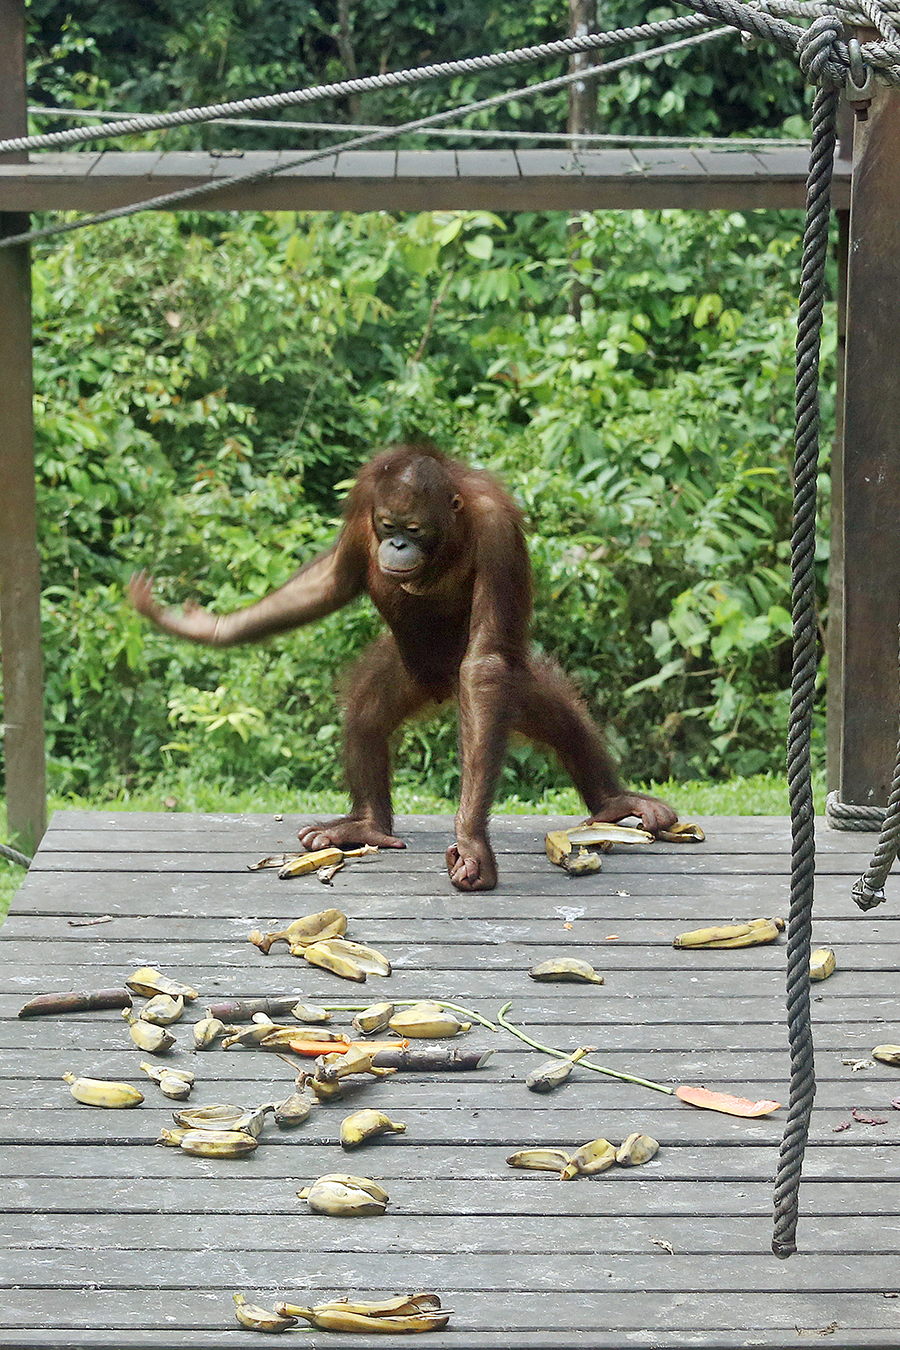 Sabah, Malaysia: An up close and personal encounter with an orangutan in its natural habitat at Sepilok Orangutan Rehabilitation Centre.